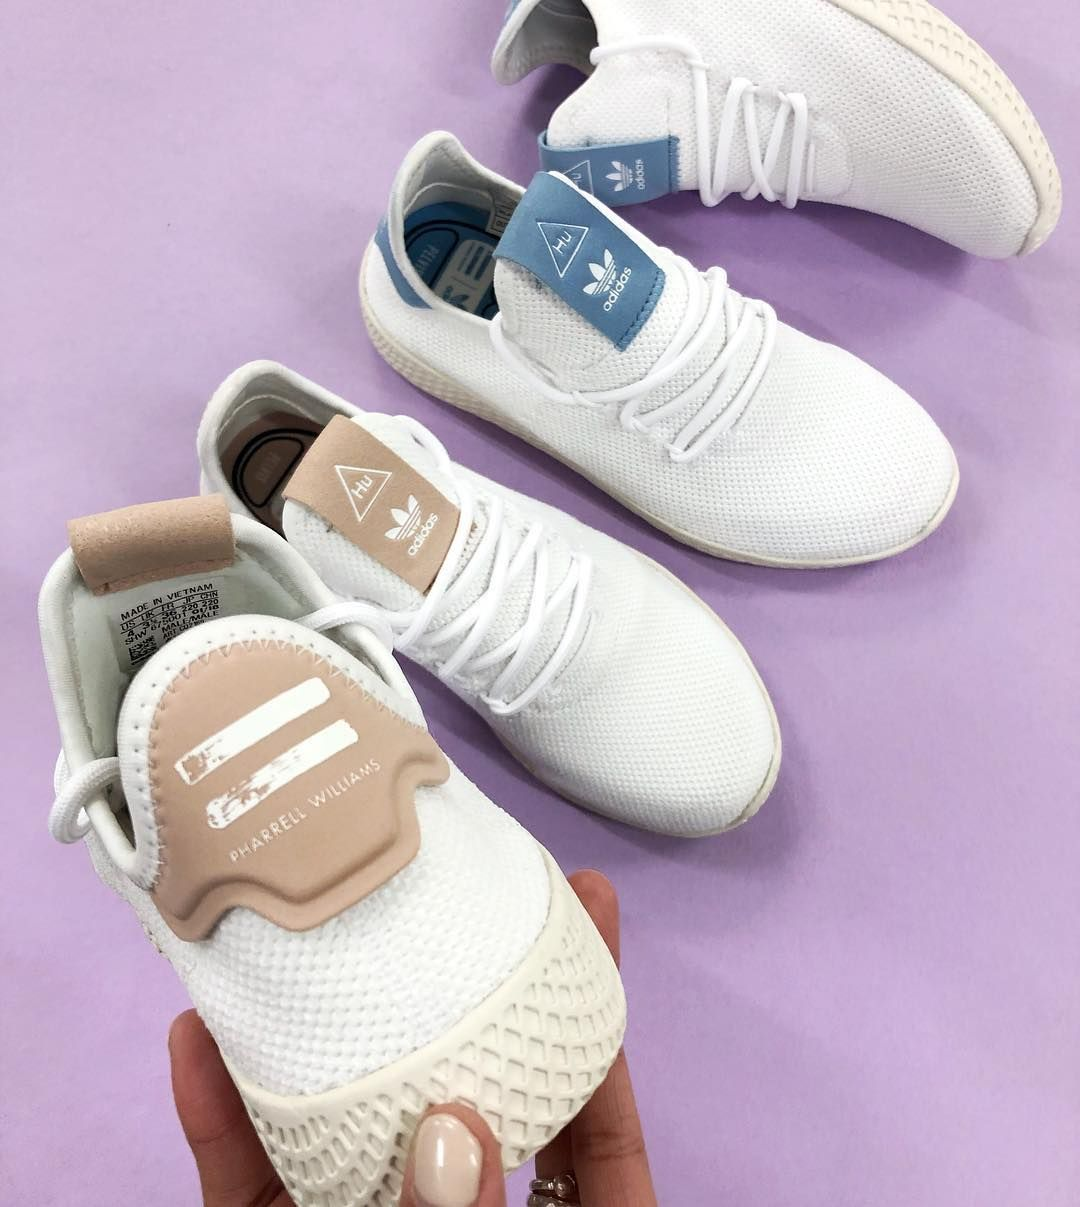 Adidas Originals Pharrell Williams Tennis Hu Pink Rematch Tennis Shoes Outfit Sneakers Fashion Adidas Pharrell Williams